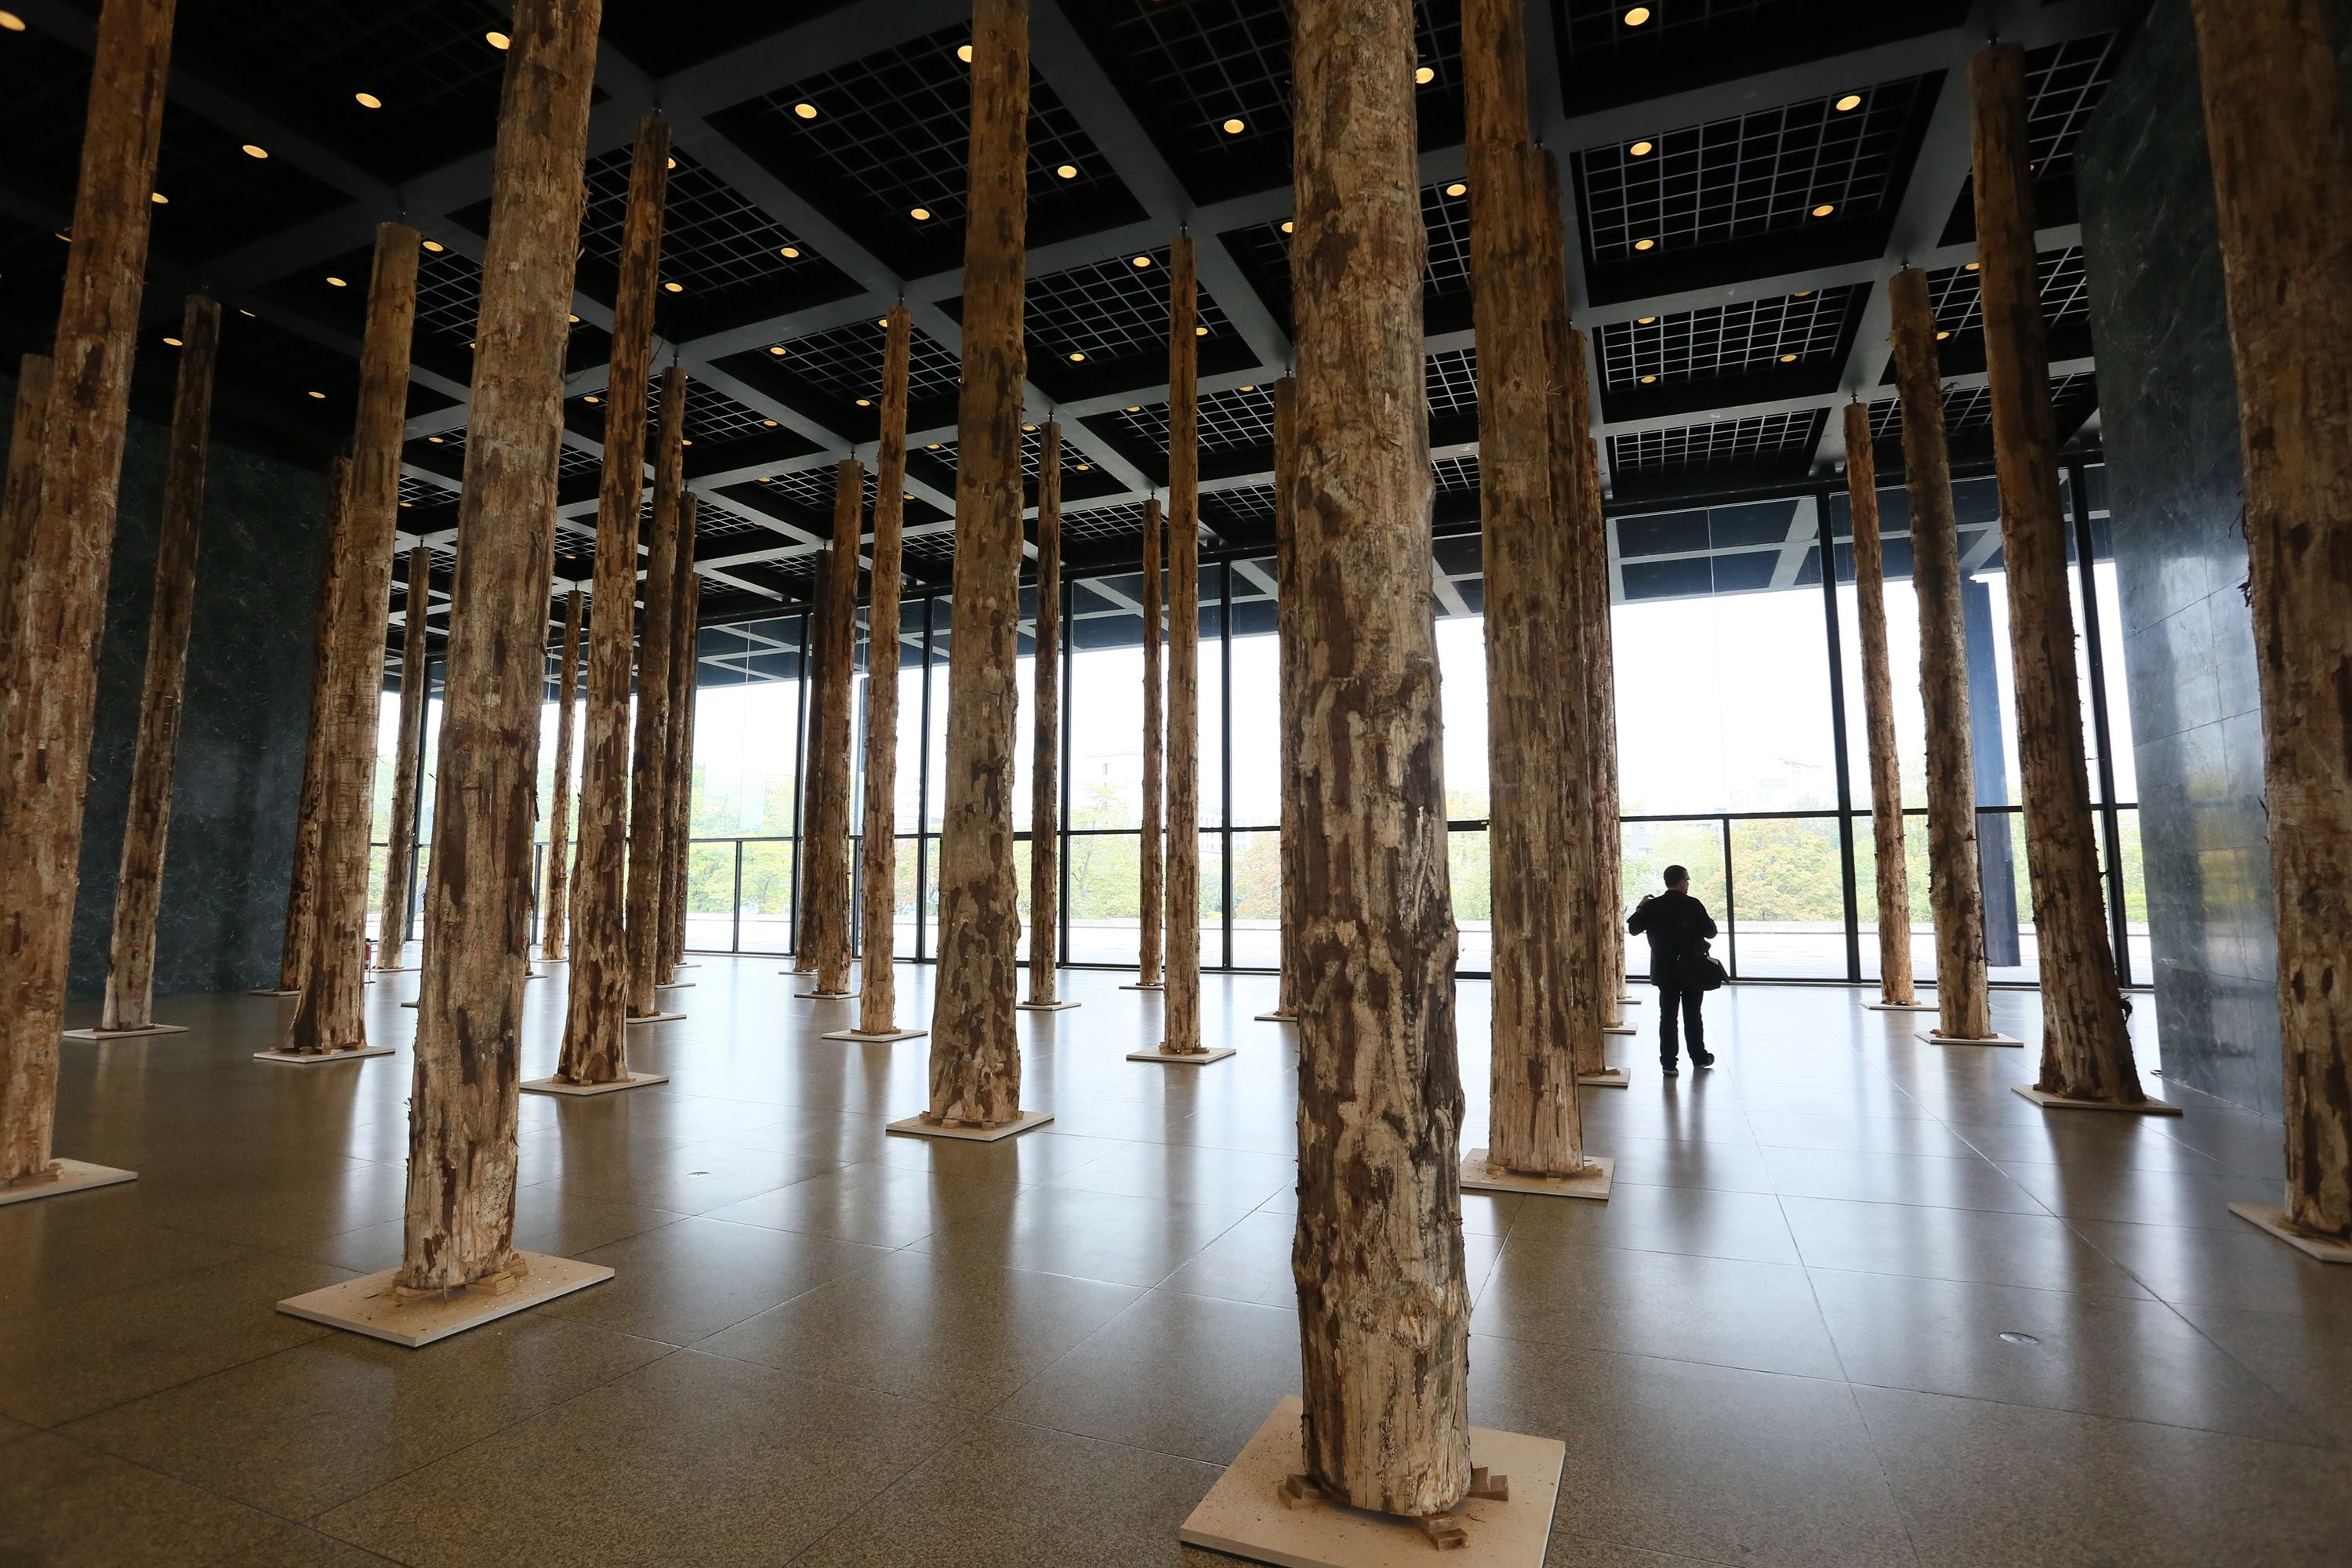 Commercial Van Interiors >> Morning News Roundup: David Chipperfield Installs Tree ...